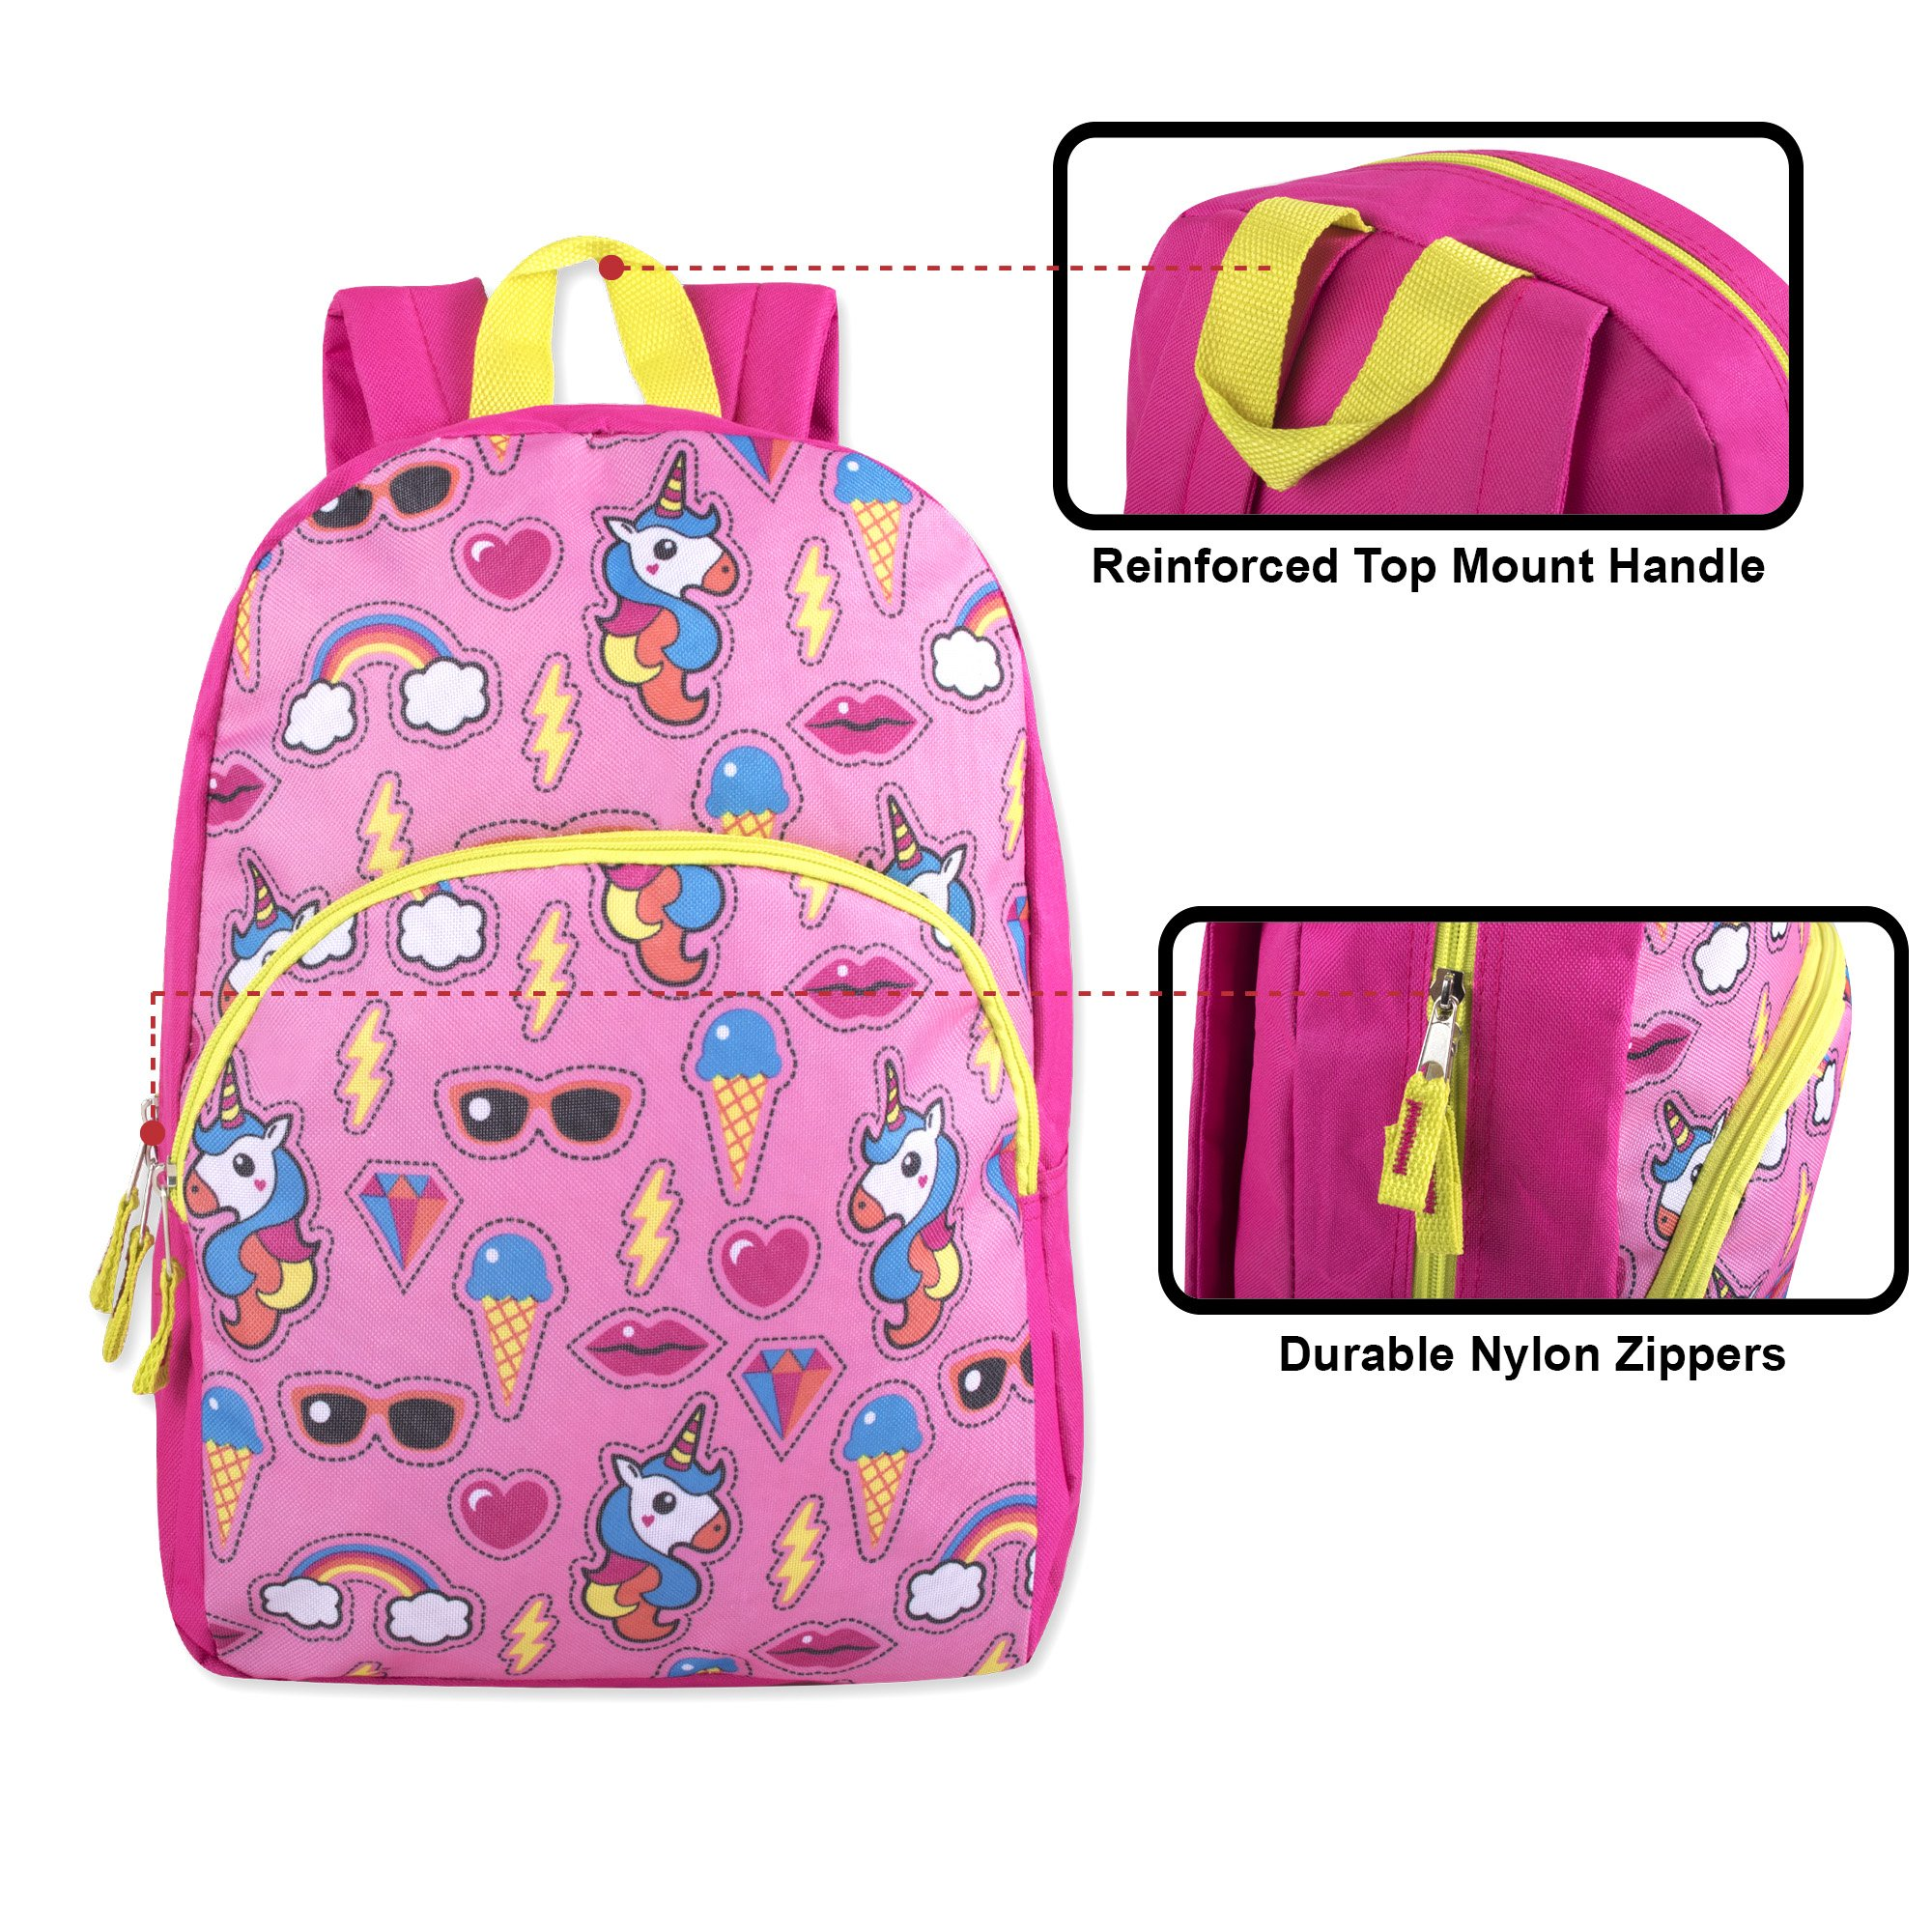 Trail maker Character Backpack (15'') with Fun Fashionable Design for Boys & Girls (Unicorn Adventure) by Trail maker (Image #2)